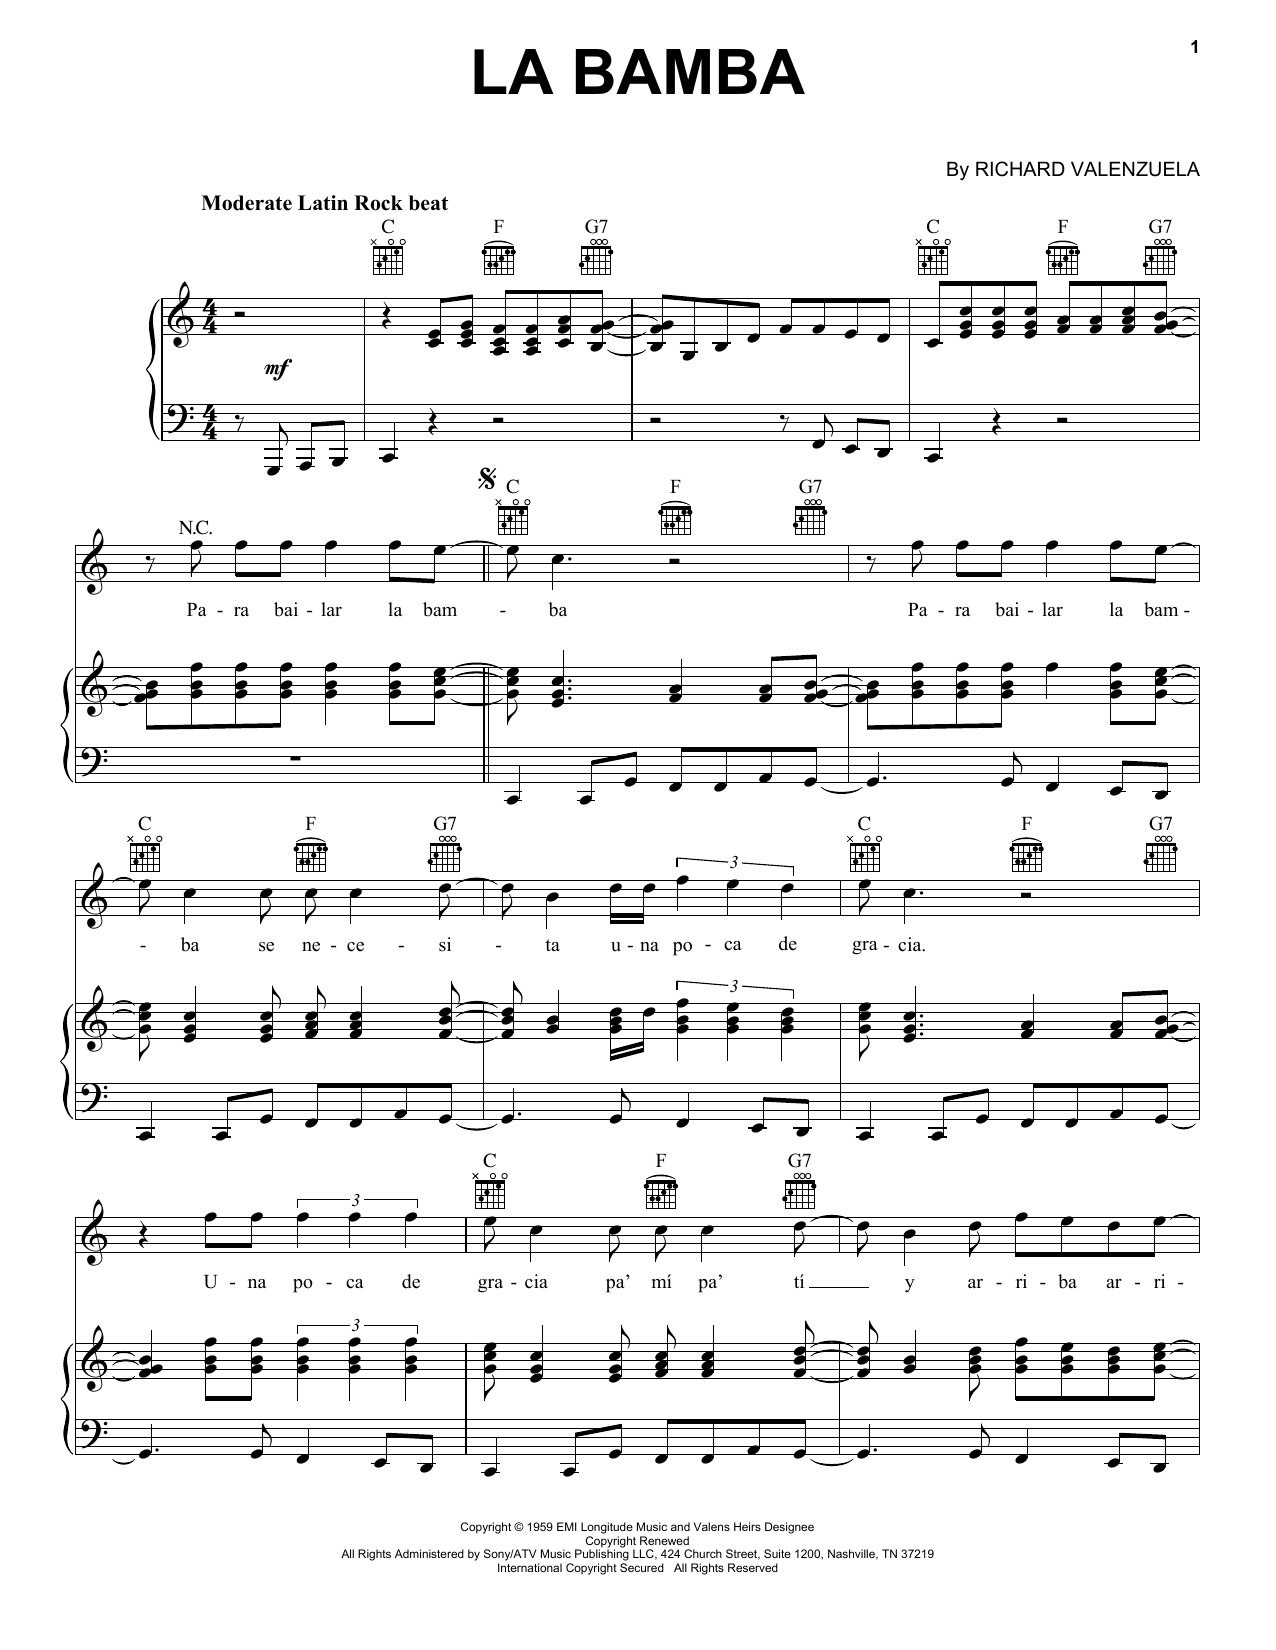 Ritchie Valens La Bamba sheet music notes and chords